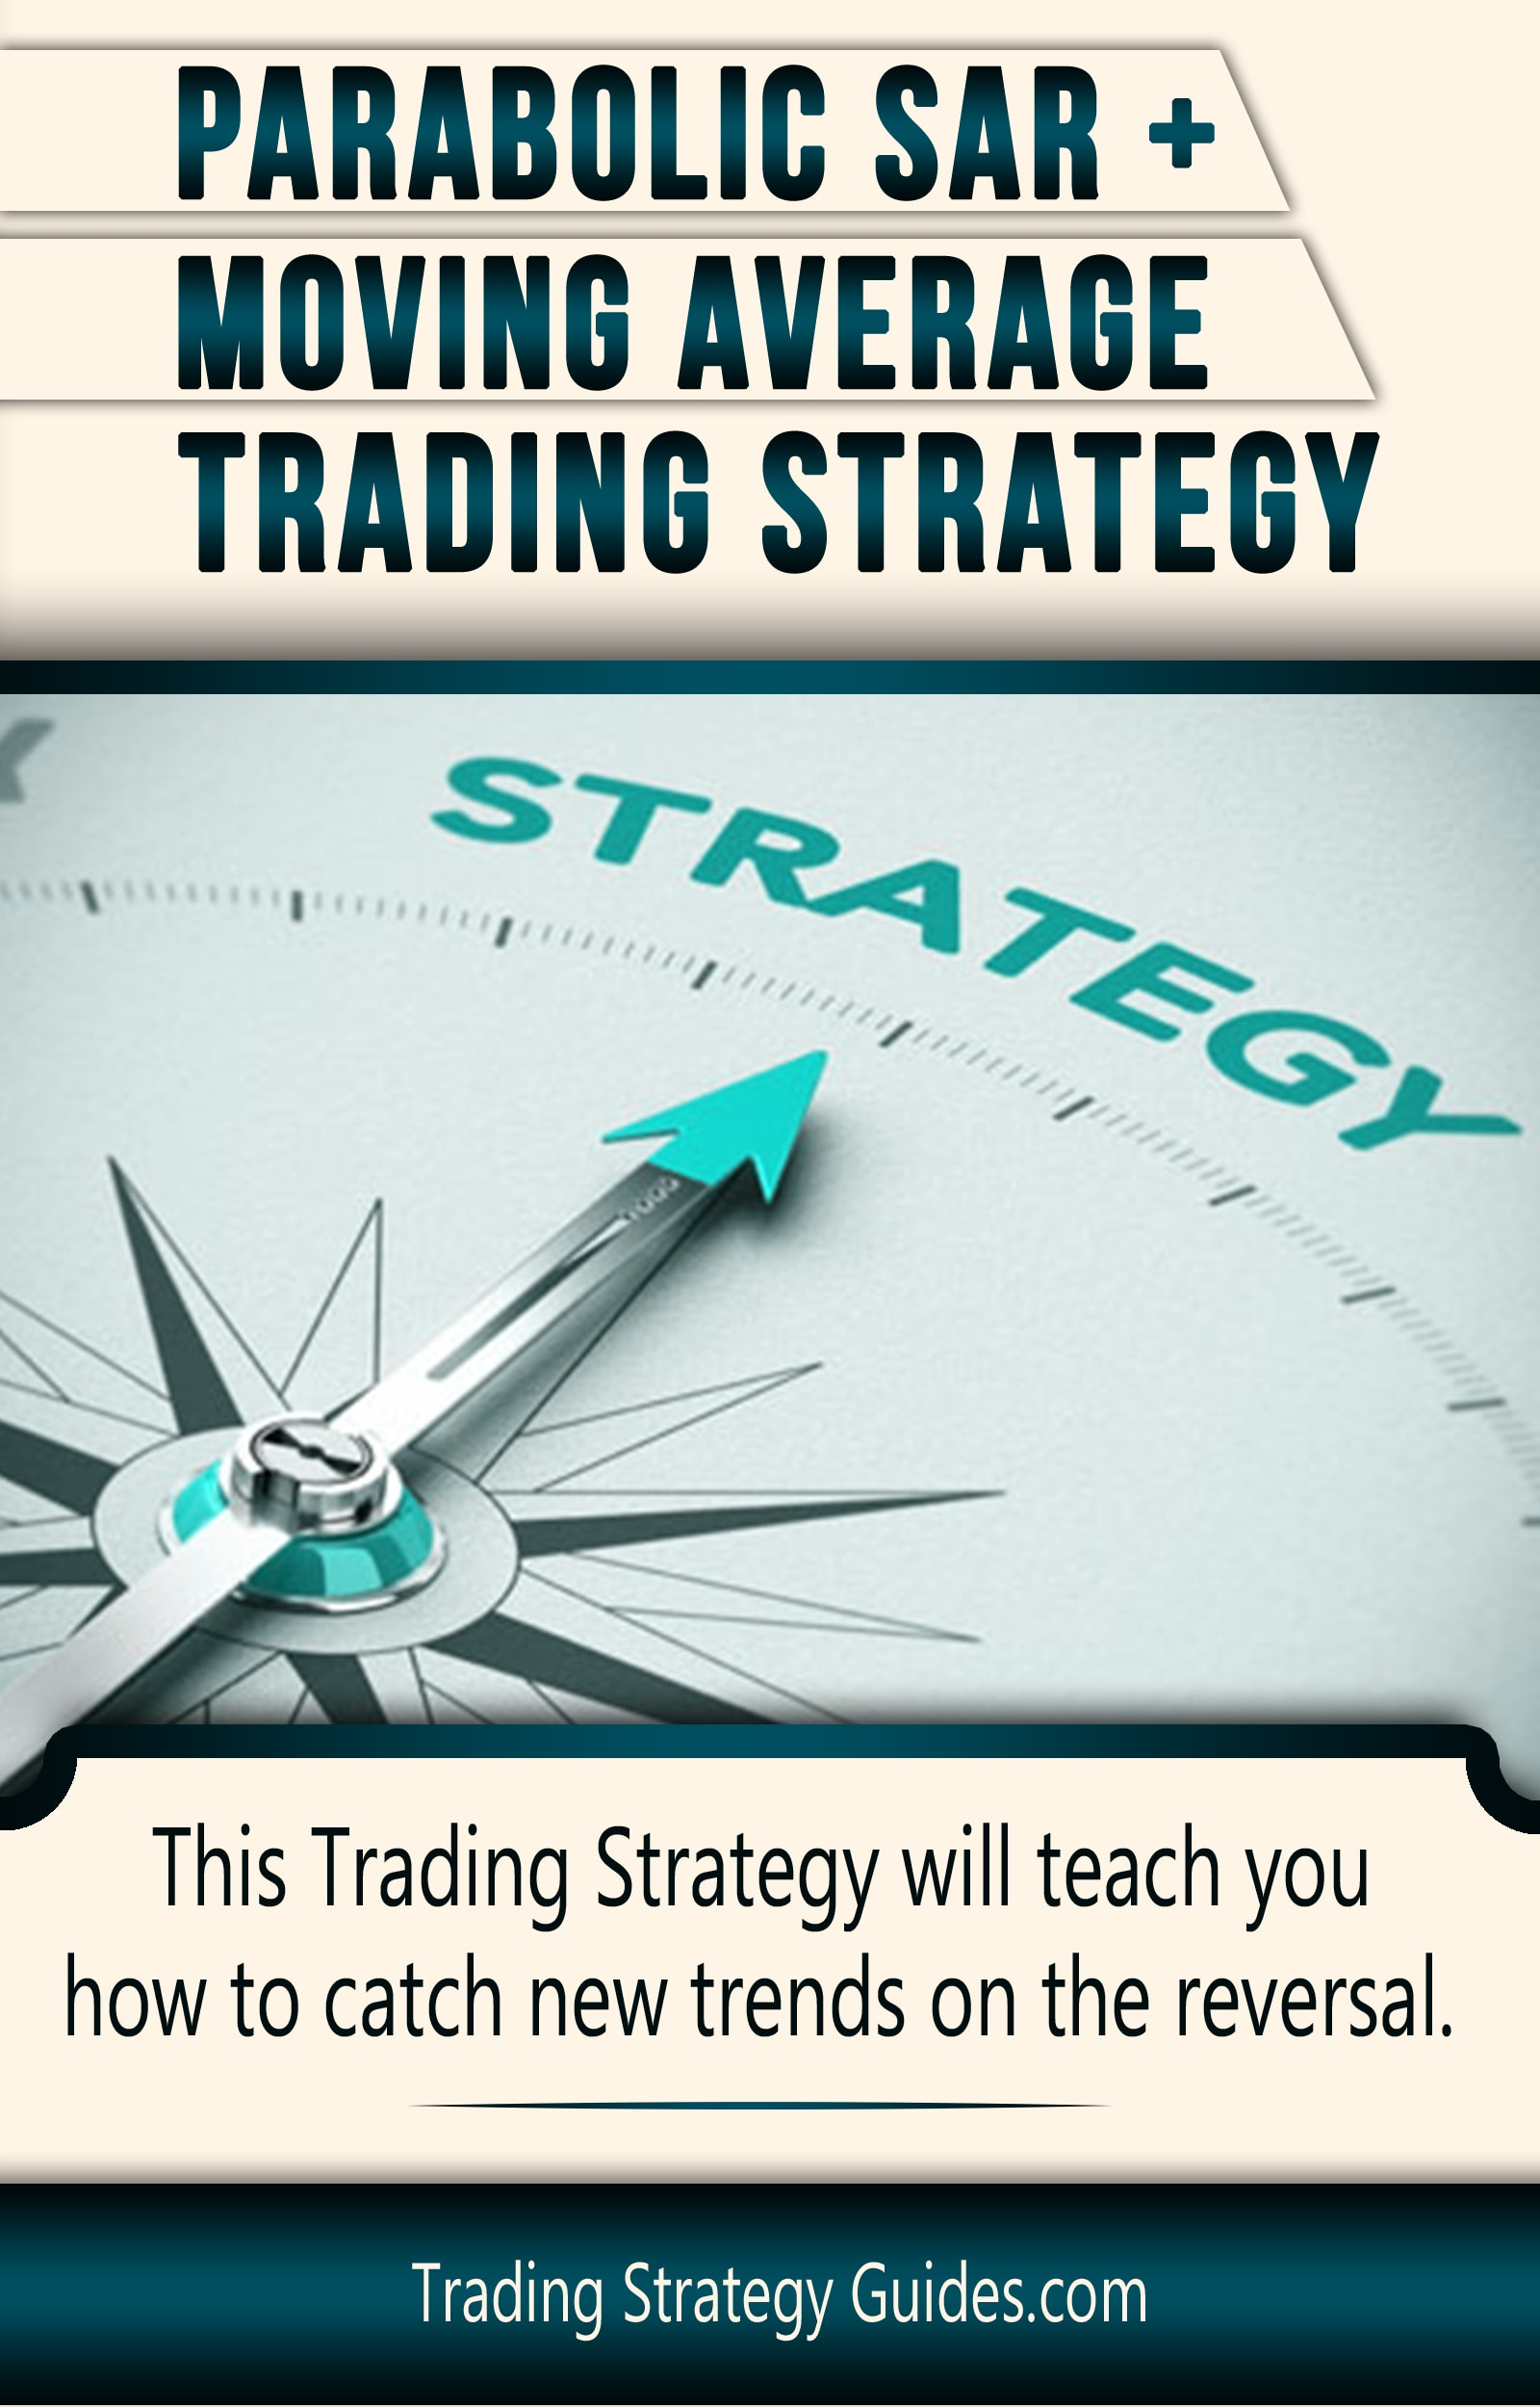 Parabolic trading strategies